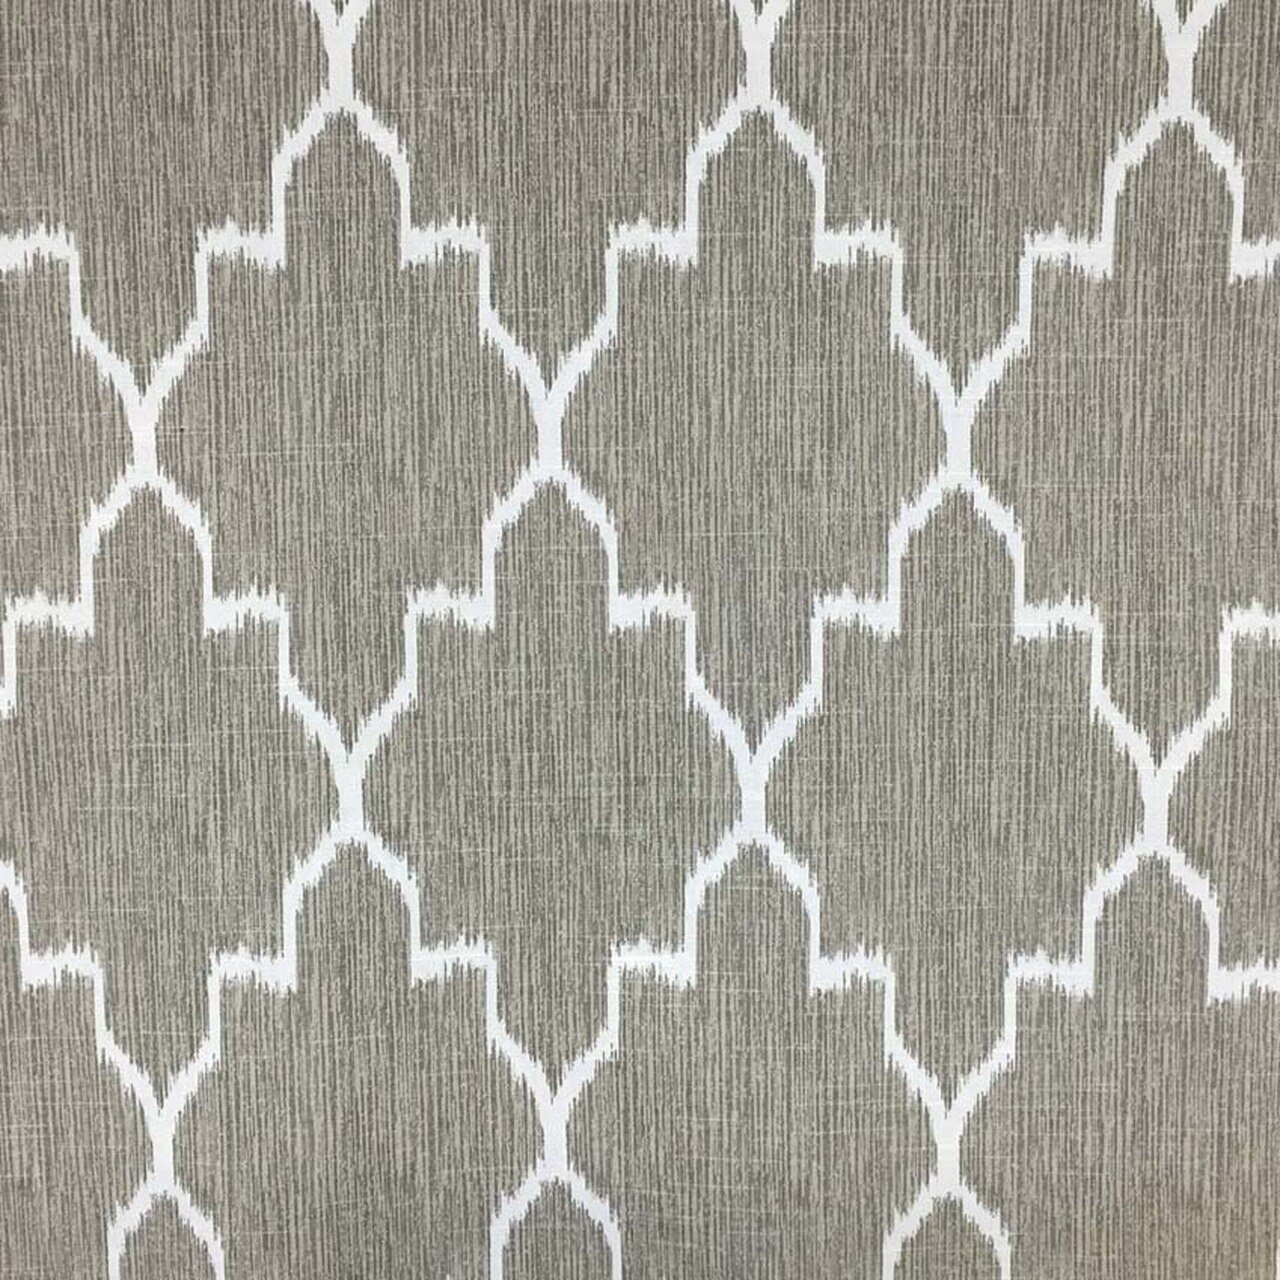 Taupe Ikat Drapery Curtain Fabric By The Yard With Images